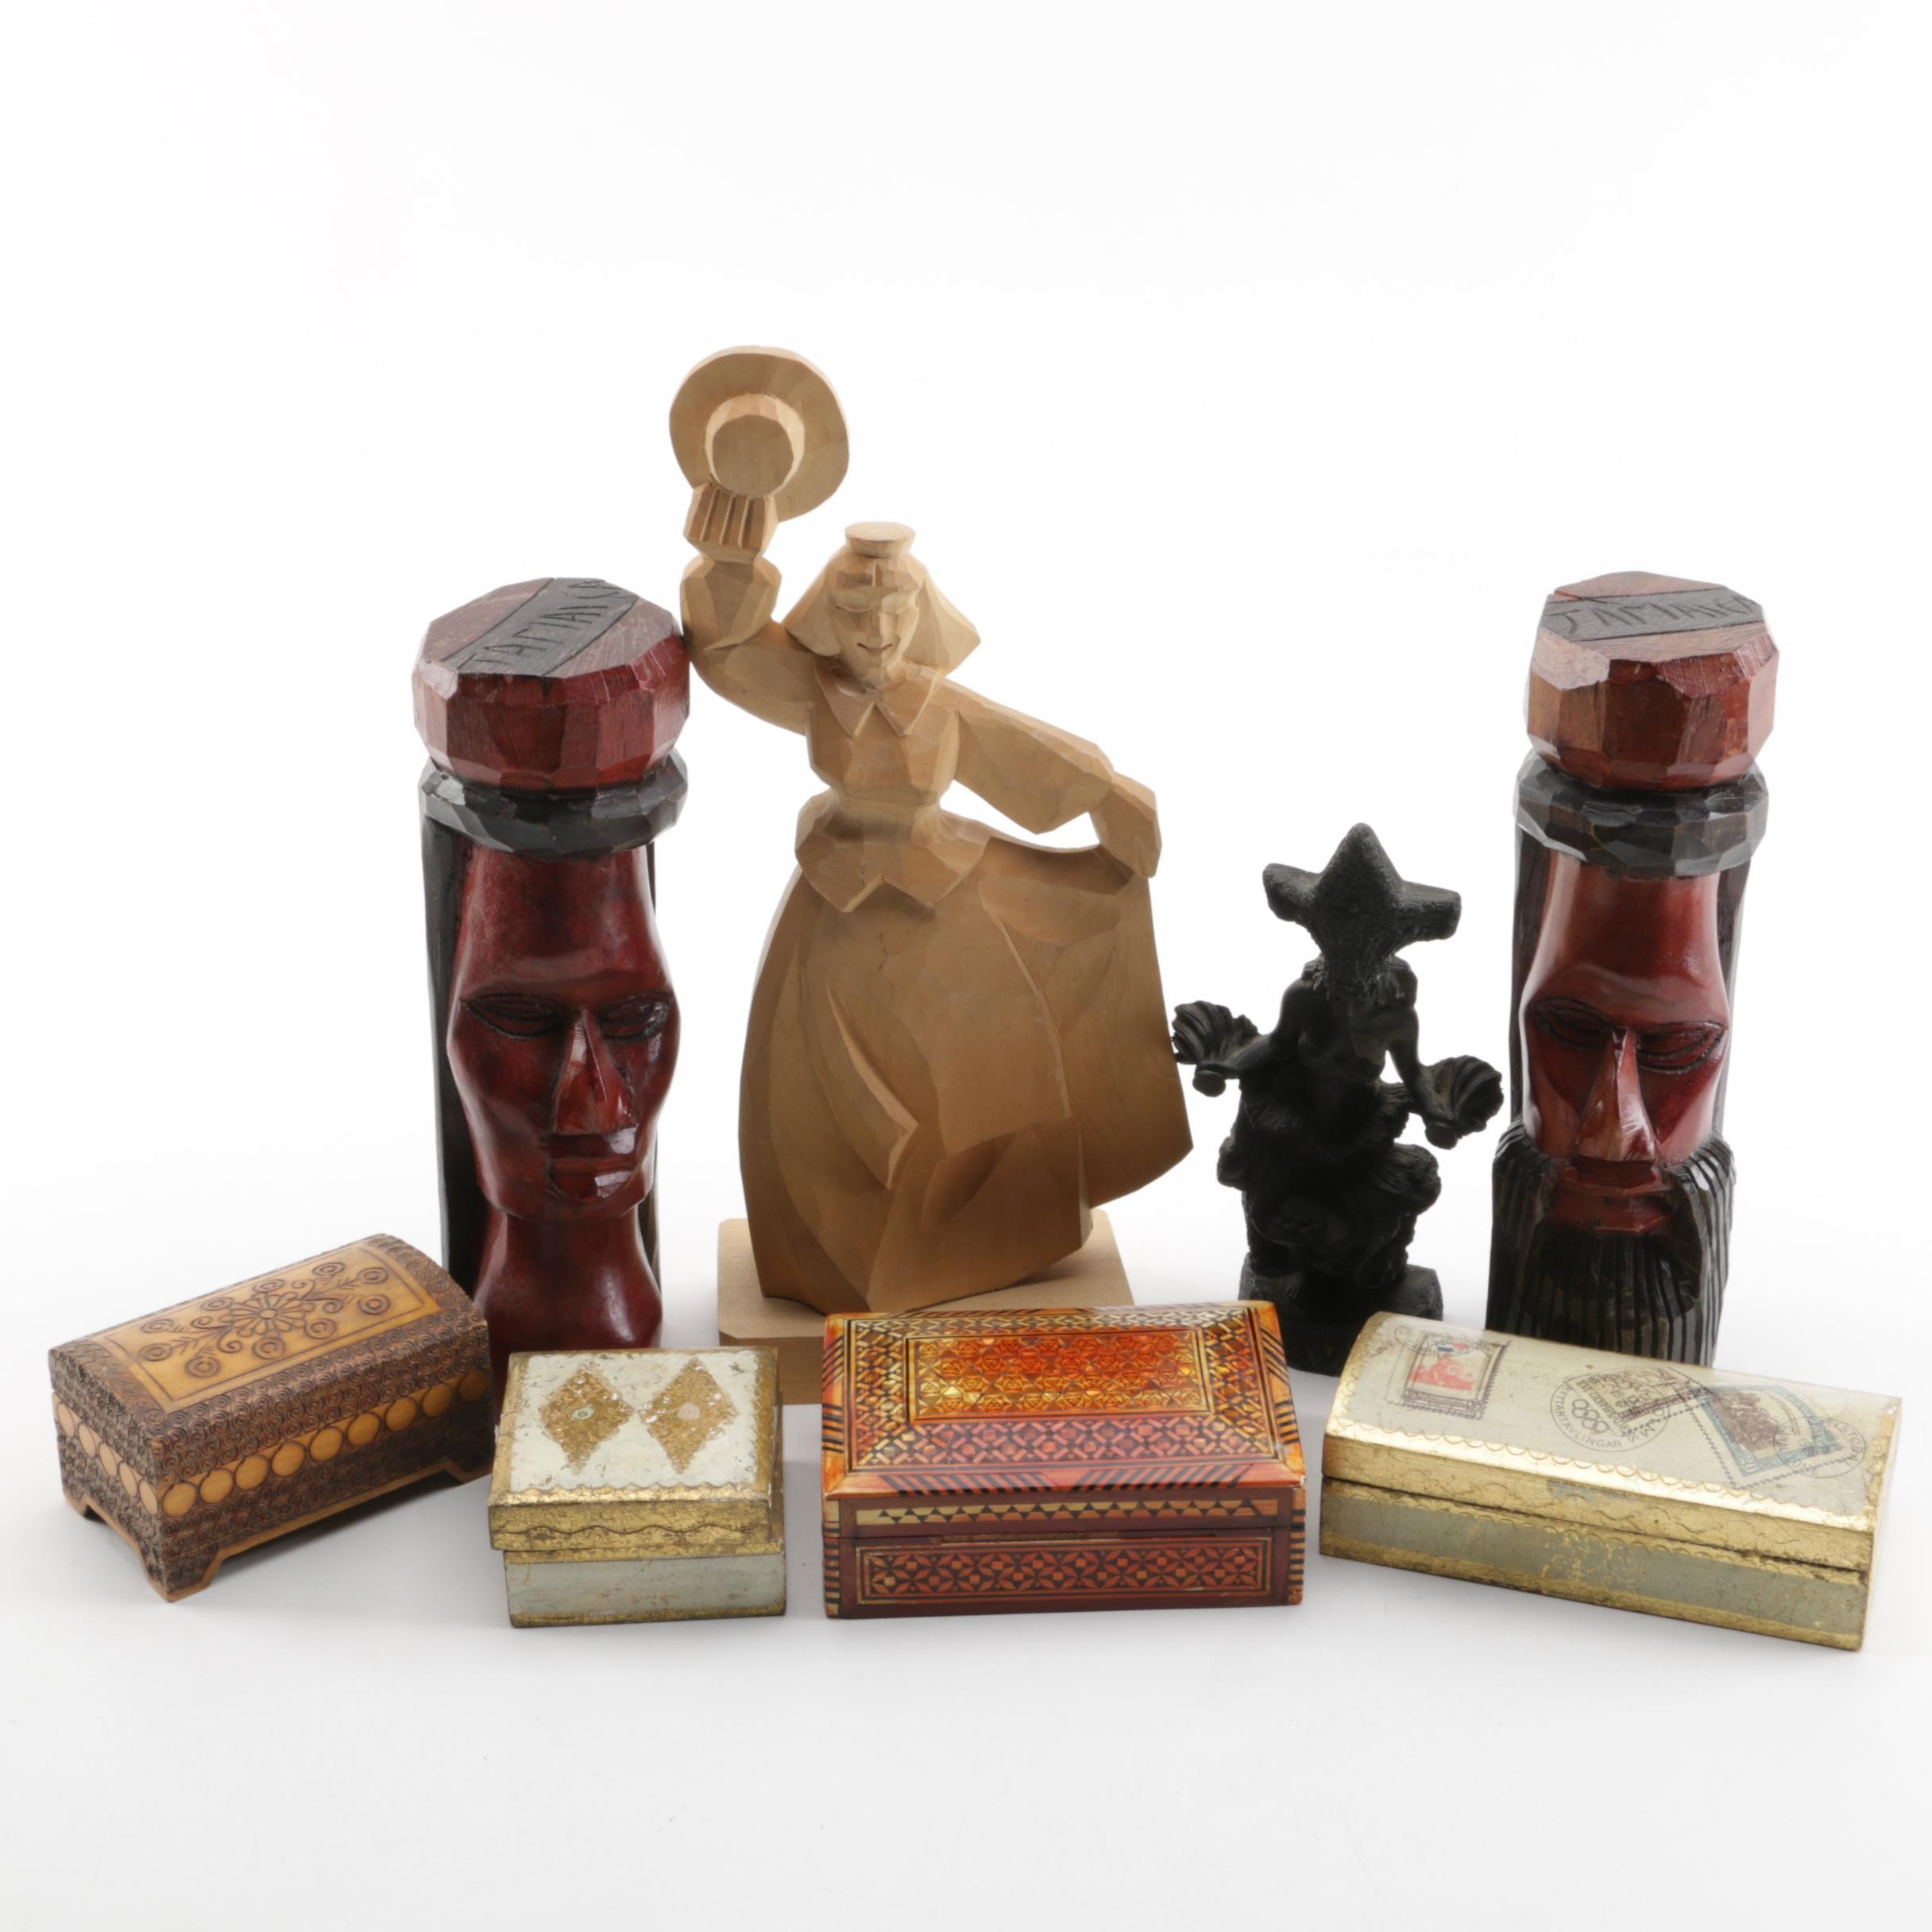 Wood Carved Folk Art Figurines and Trinket Boxes